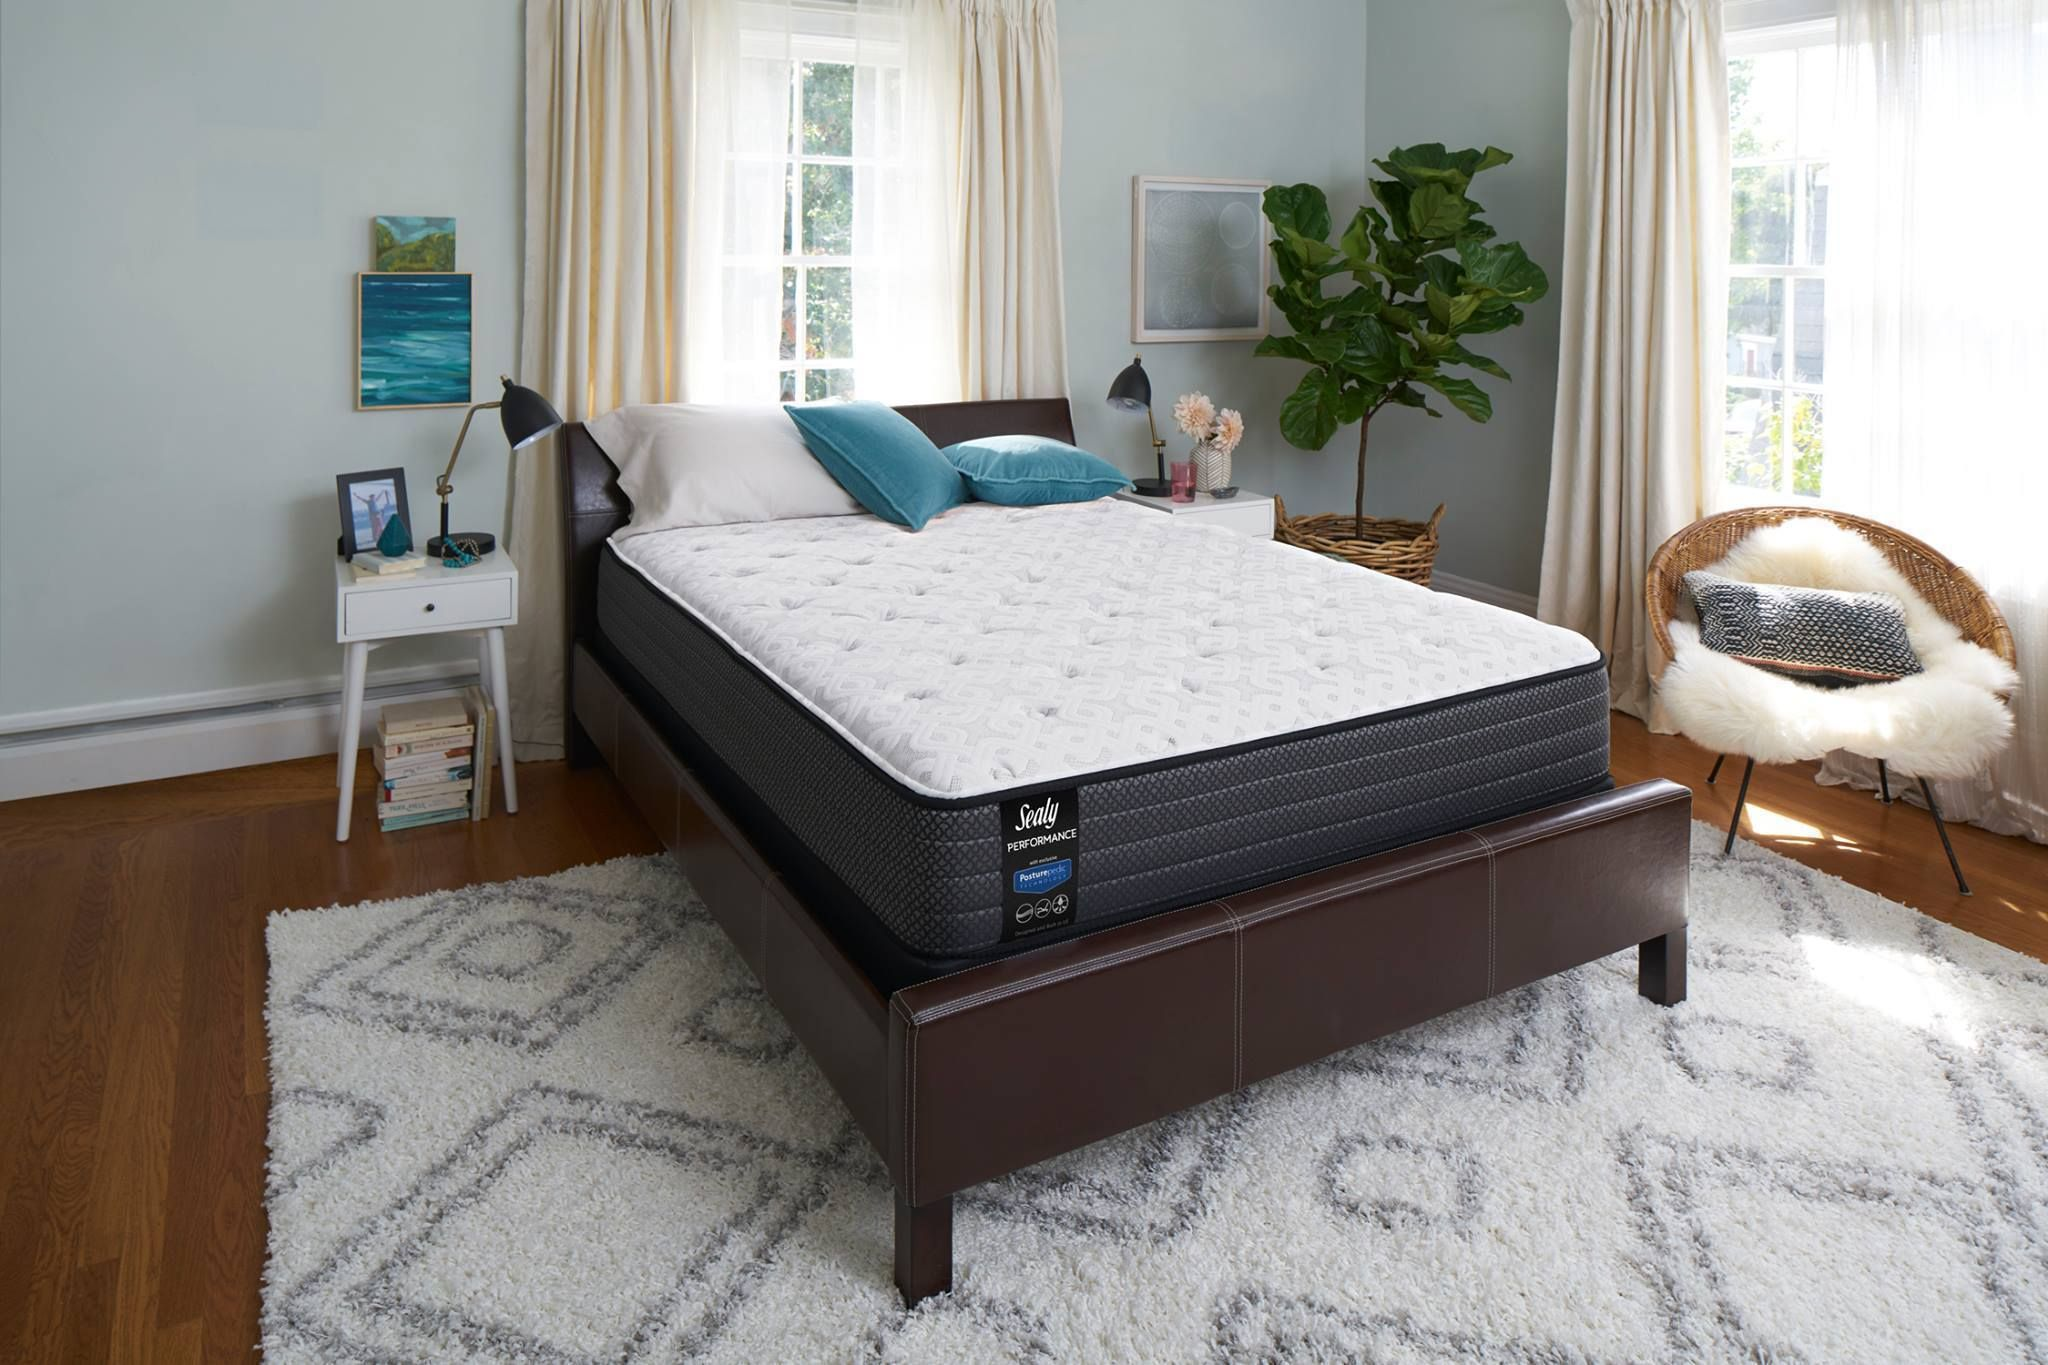 The Sealy Posturepedic Heartwarming Cushion Firm Mattress A Traditional Innerspring Option That Responds To Your Every Movement And Offers An Exceptional